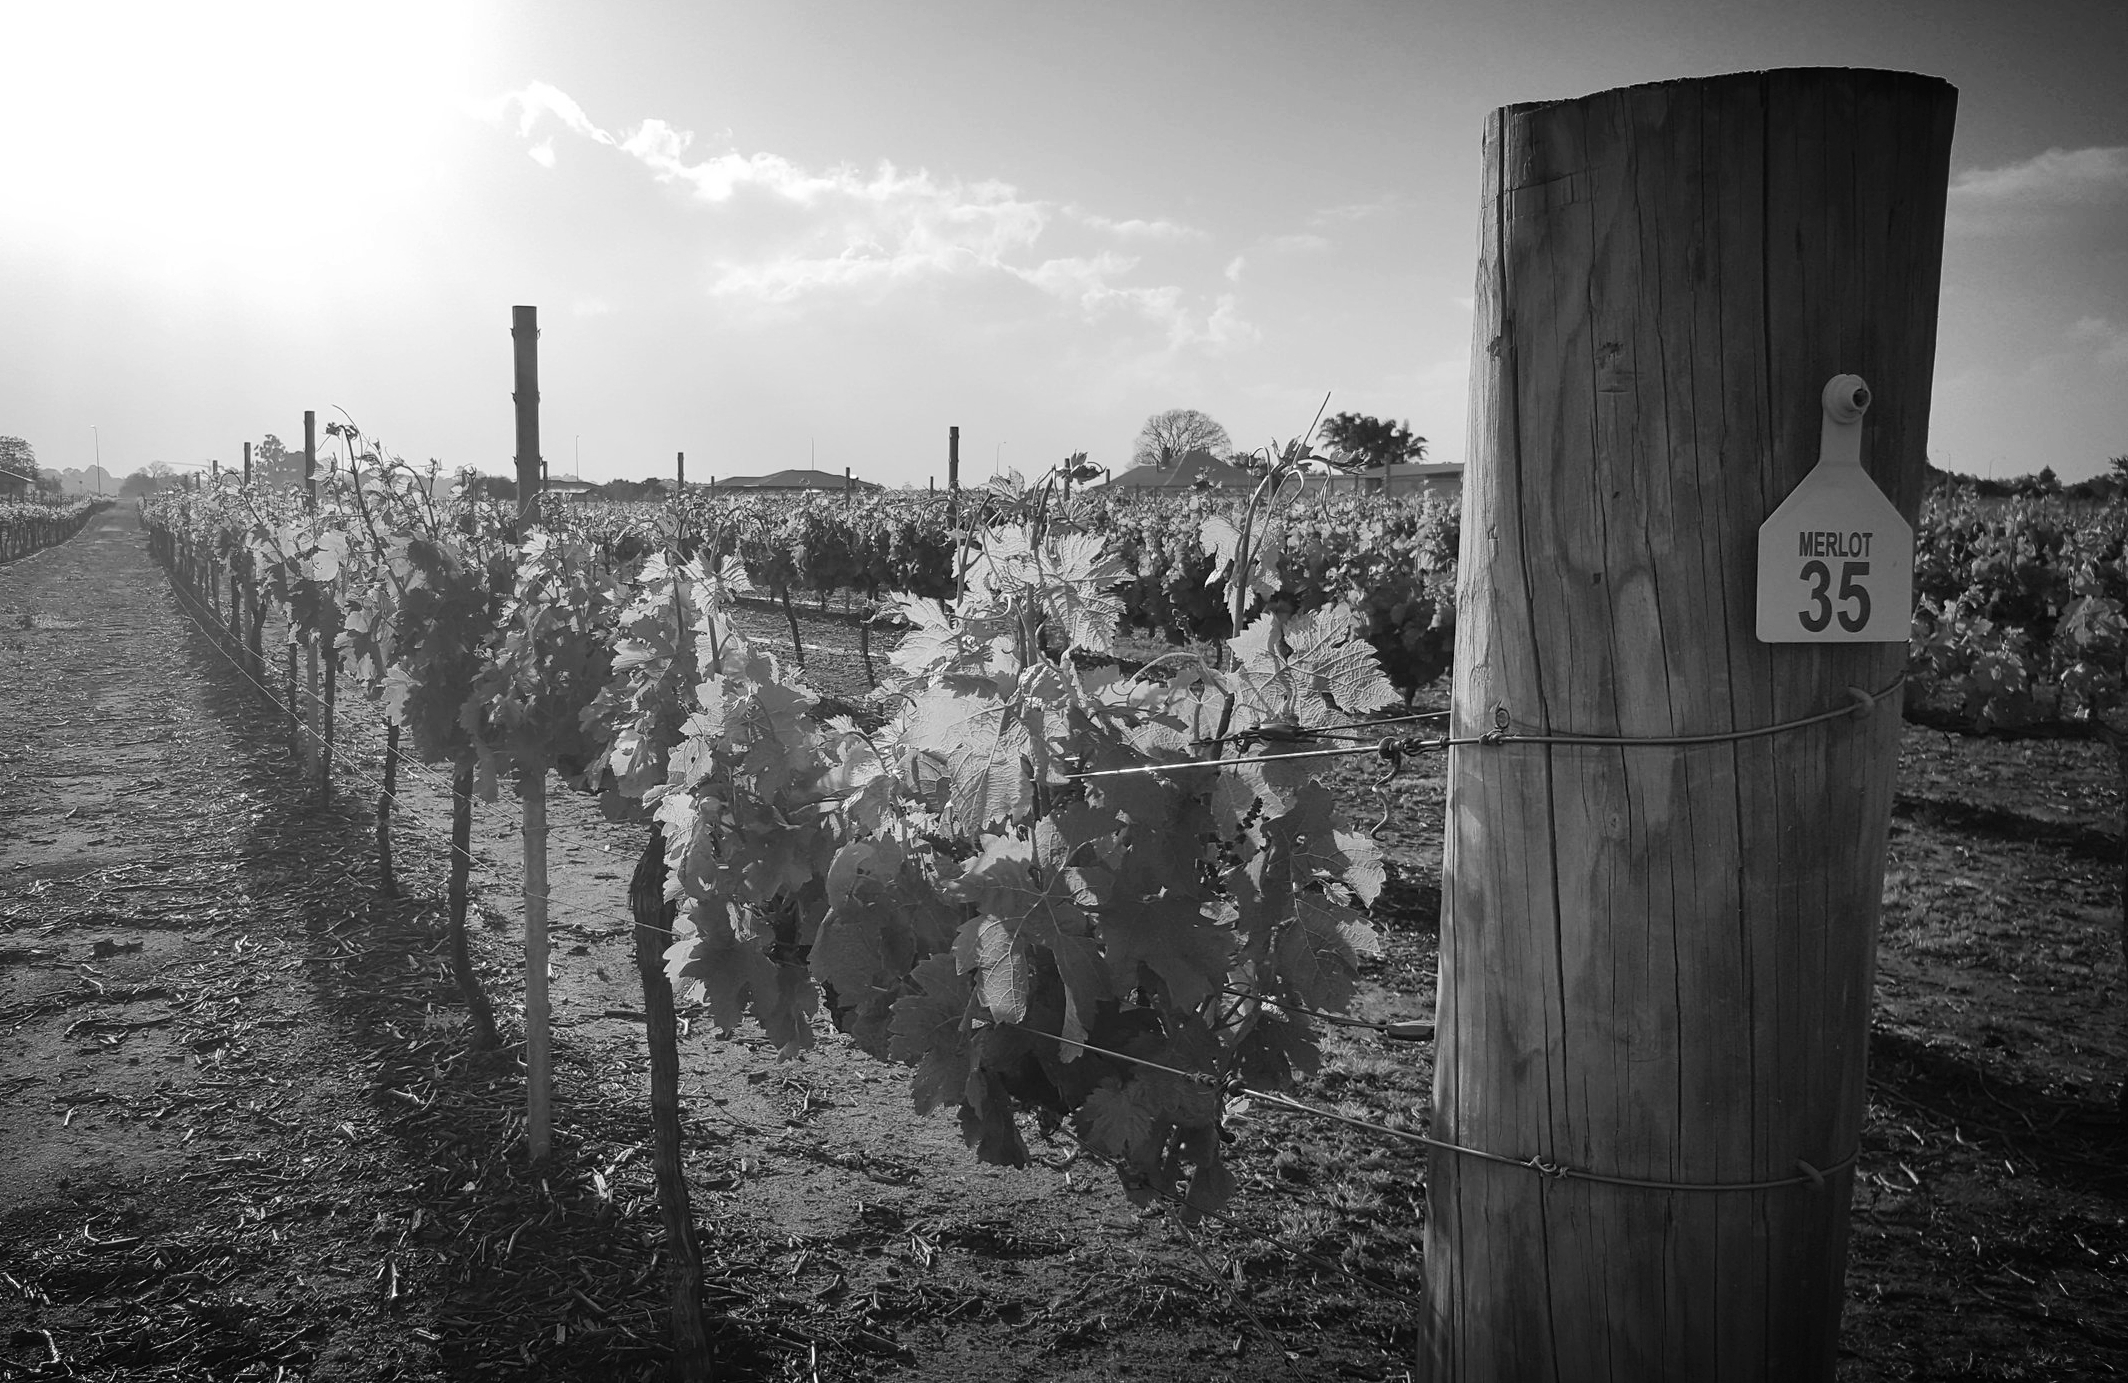 In 1829 - Olive Farm Wines was established by English botanist, Thomas Waters, making it the oldest winery in Western Australia